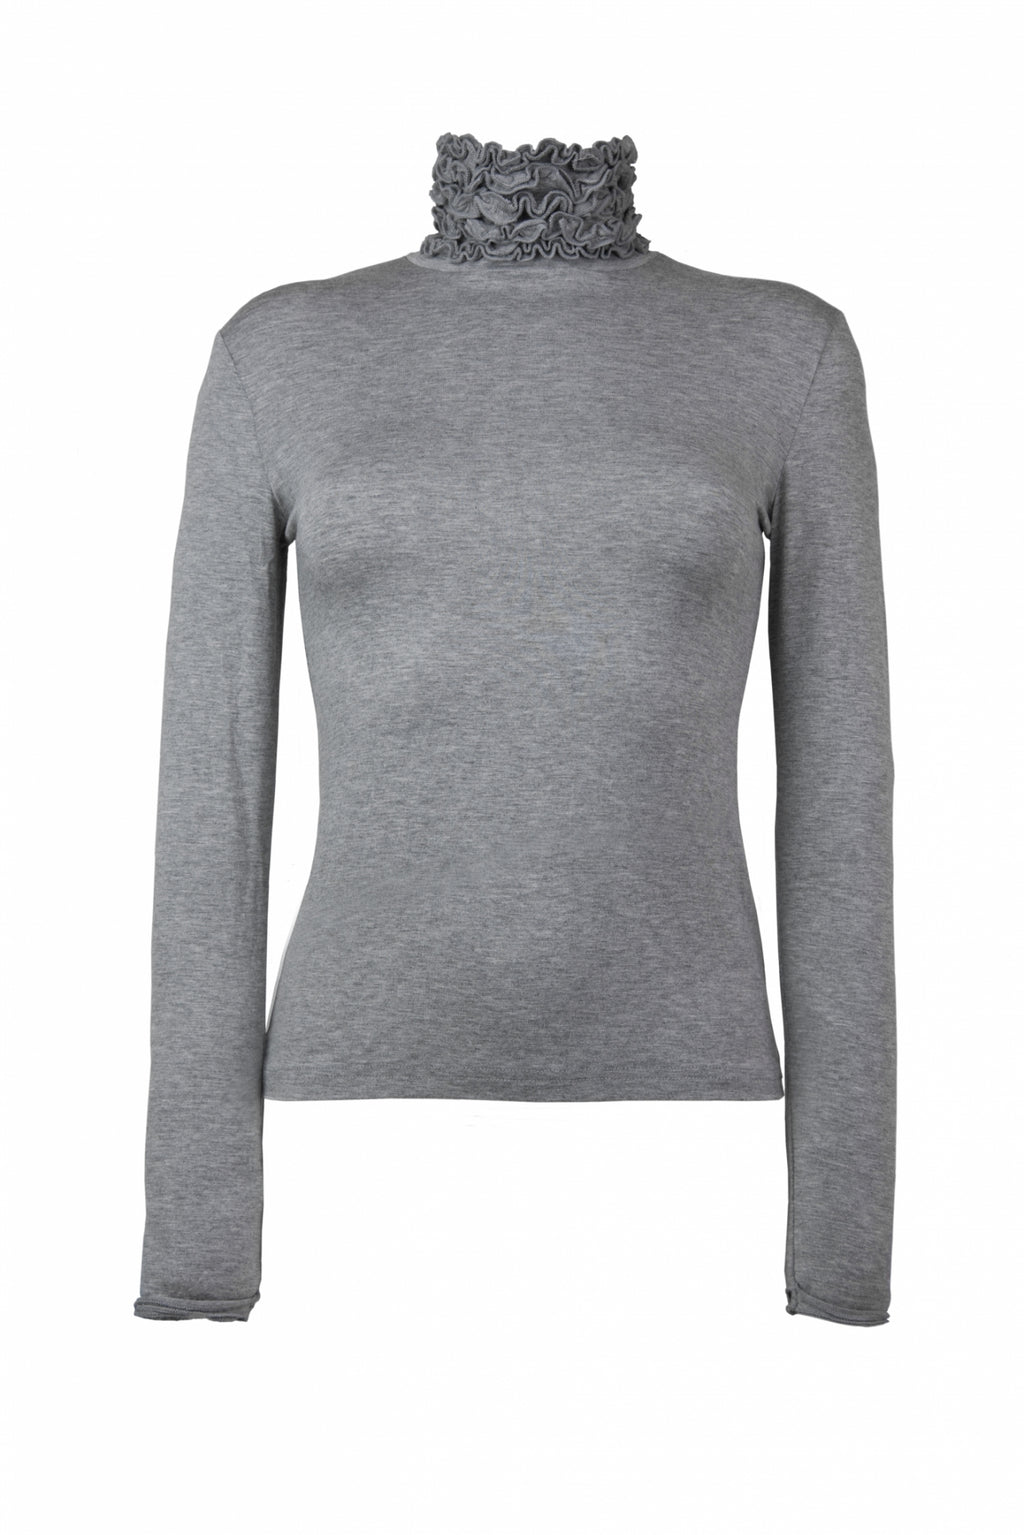 Ruffle Polo Neck Fine Knit Sweater - Silver Grey